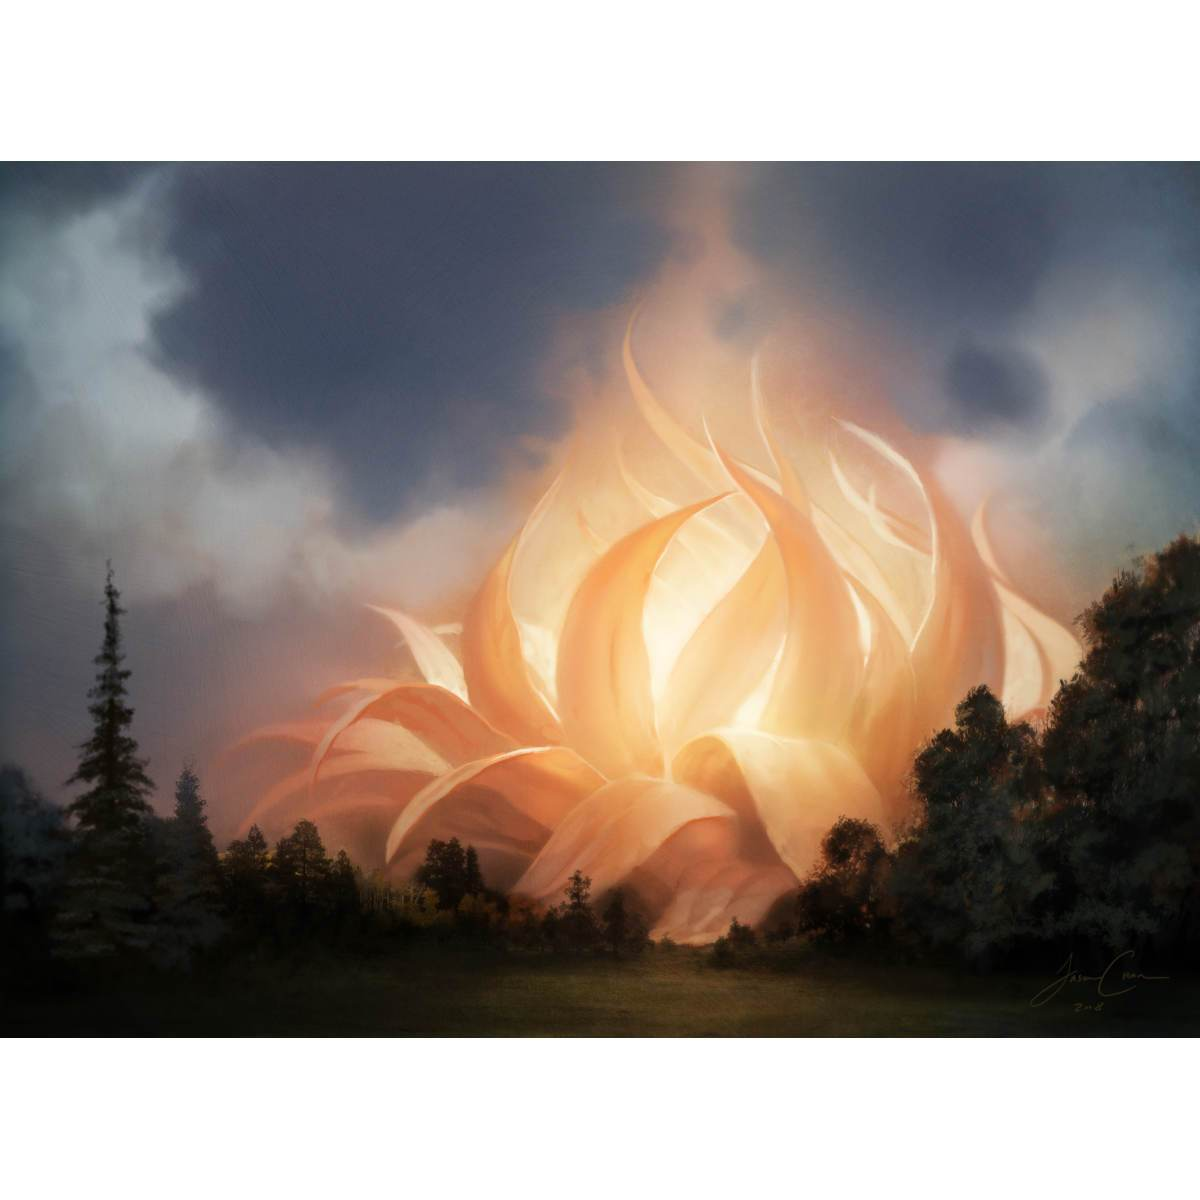 Sunpetal Grove Print - Print - Original Magic Art - Accessories for Magic the Gathering and other card games